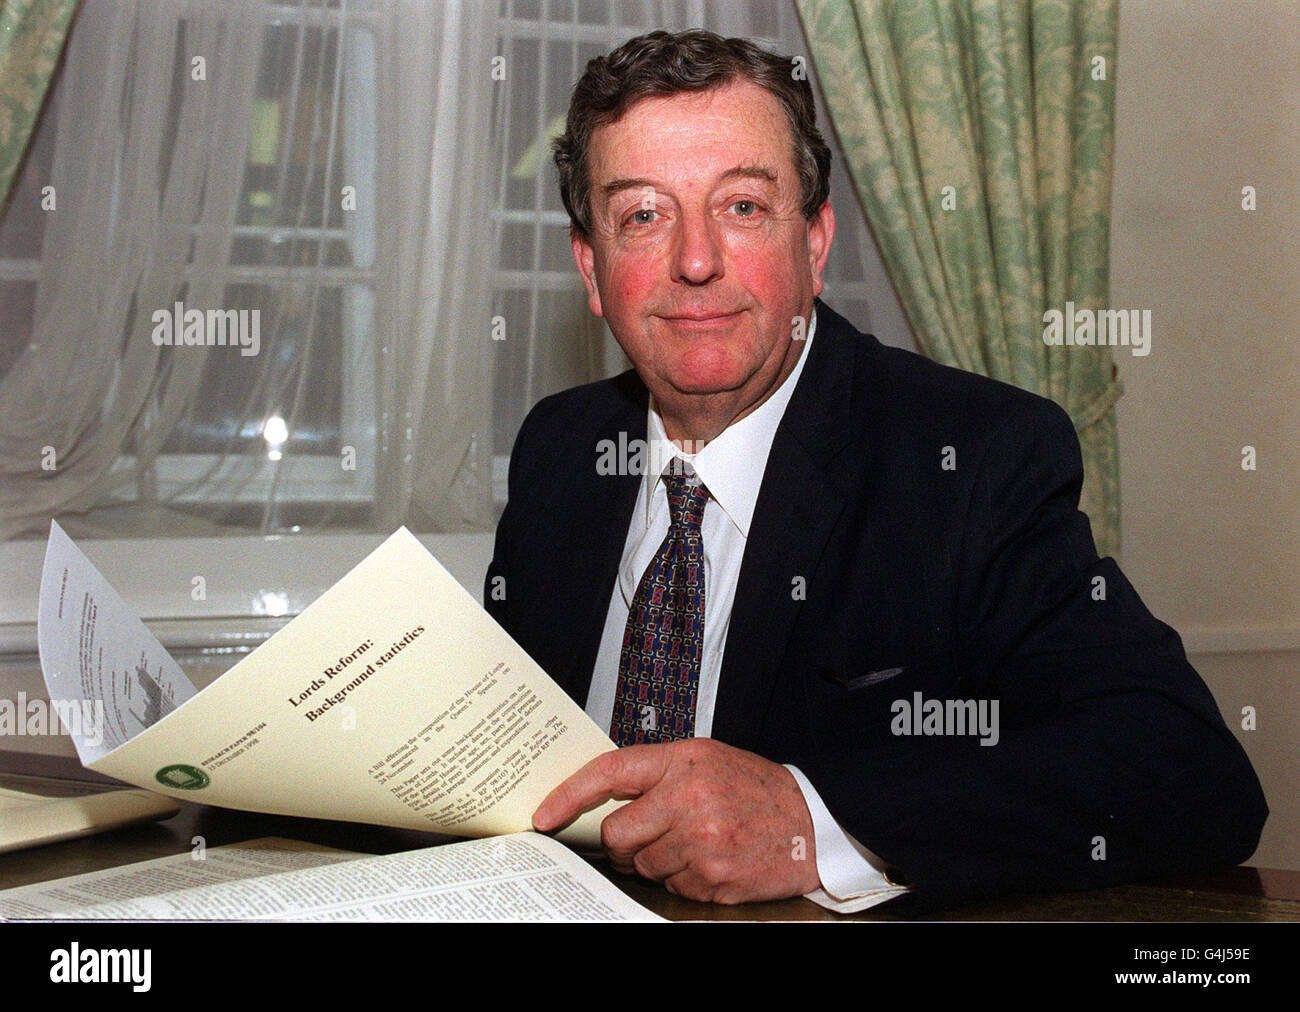 Lord Wakeham/House of Lords - Stock Image